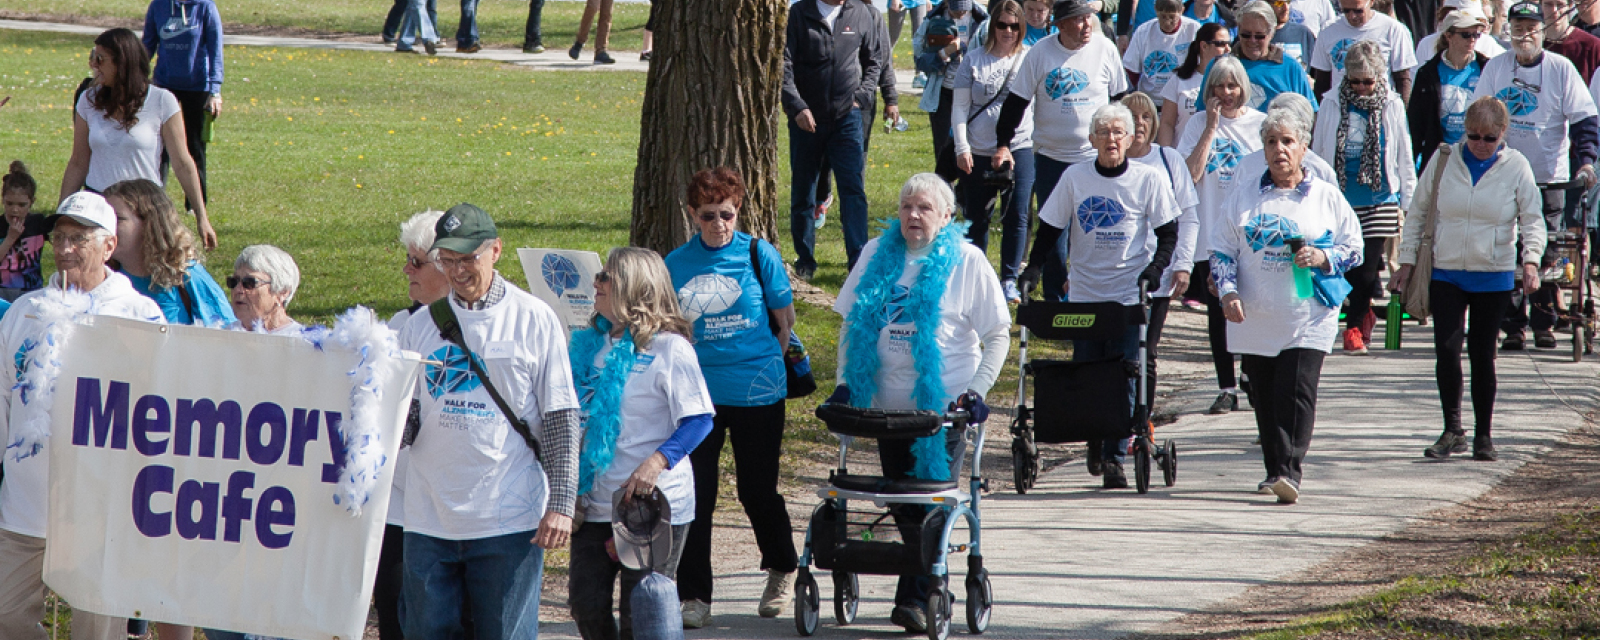 Alzheimer's Walk - Make Memories Matter  Southampton ON